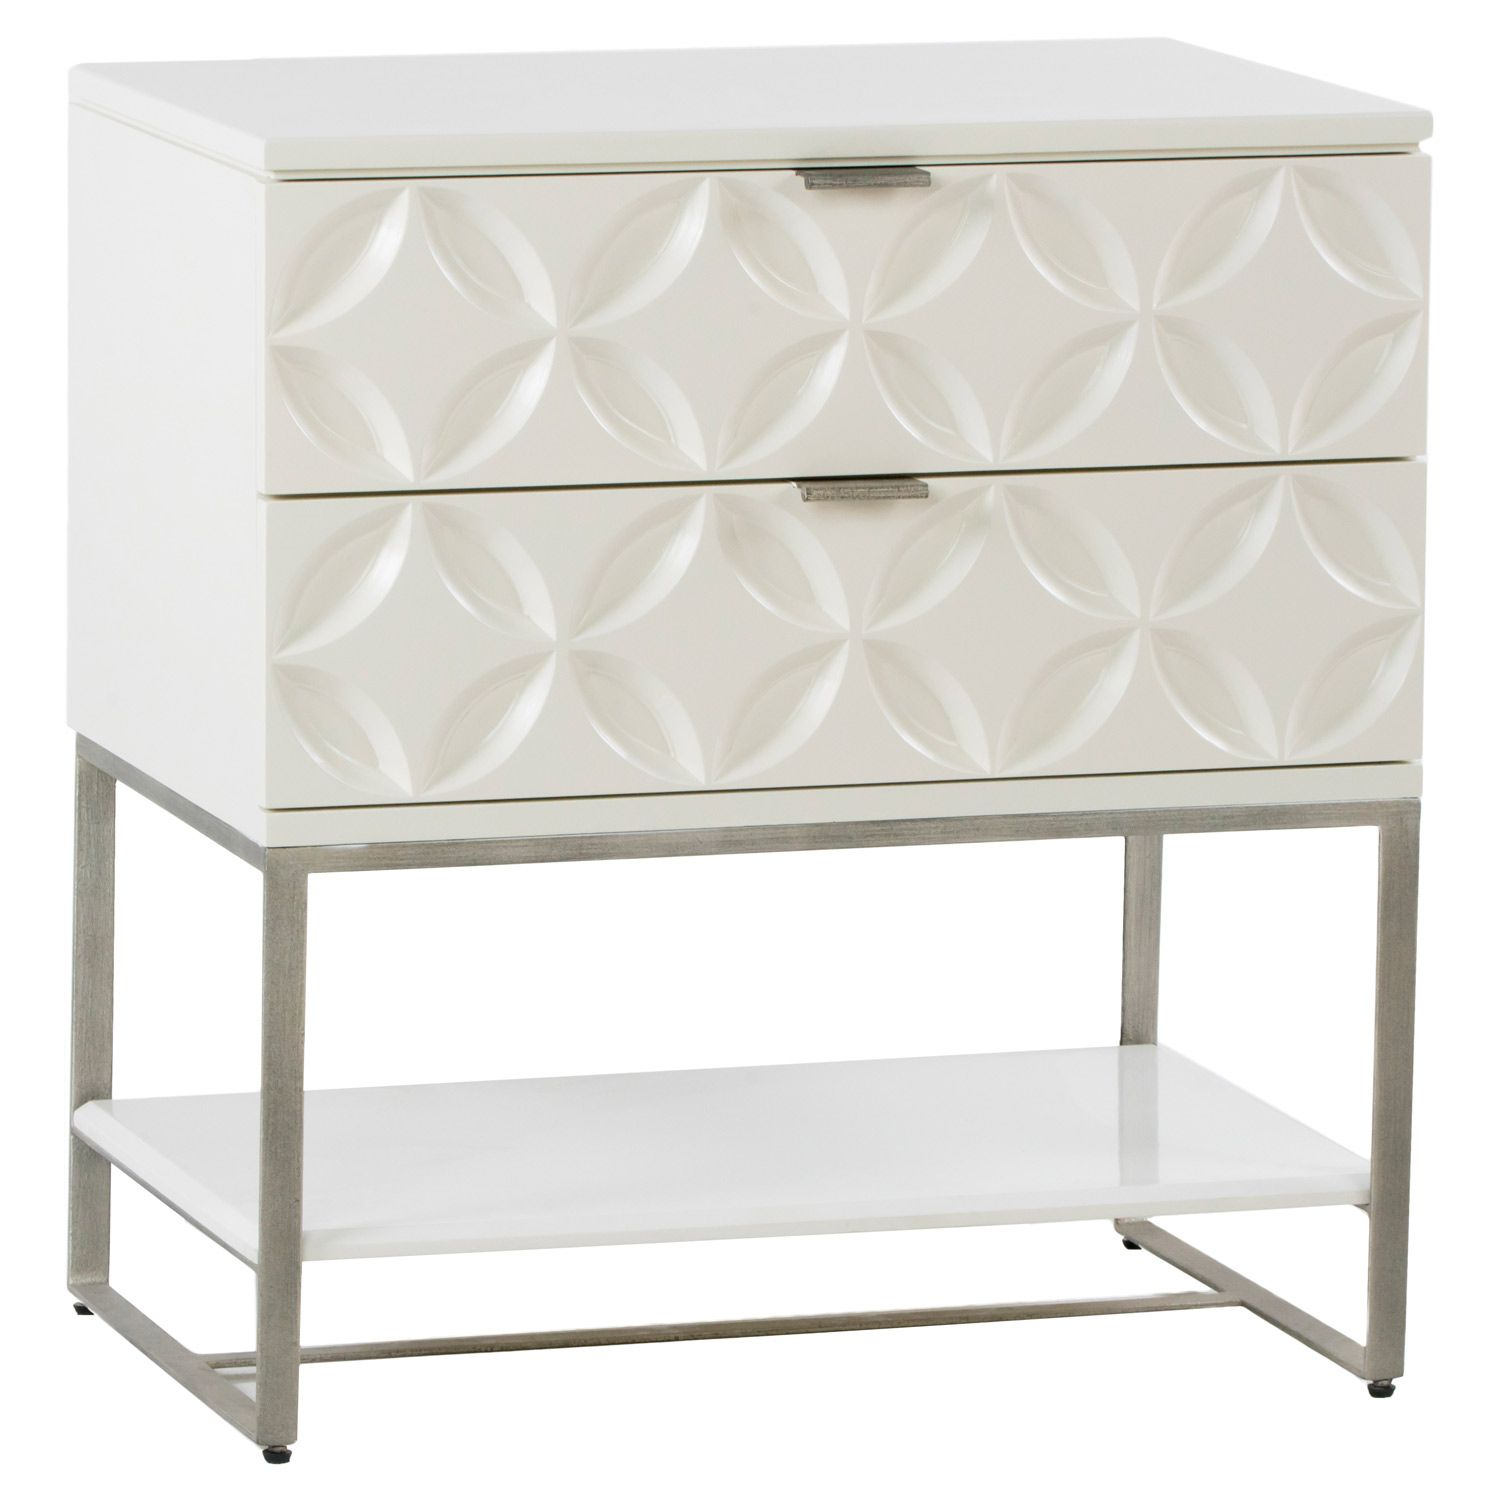 how to clean lacquer furniture. The Rosie Chest From Gabby Furniture Offers A Contemporary Accent To Bedroom Or Living Room. In White Lacquer Finish, This Elegant Furnishing Showcases How Clean